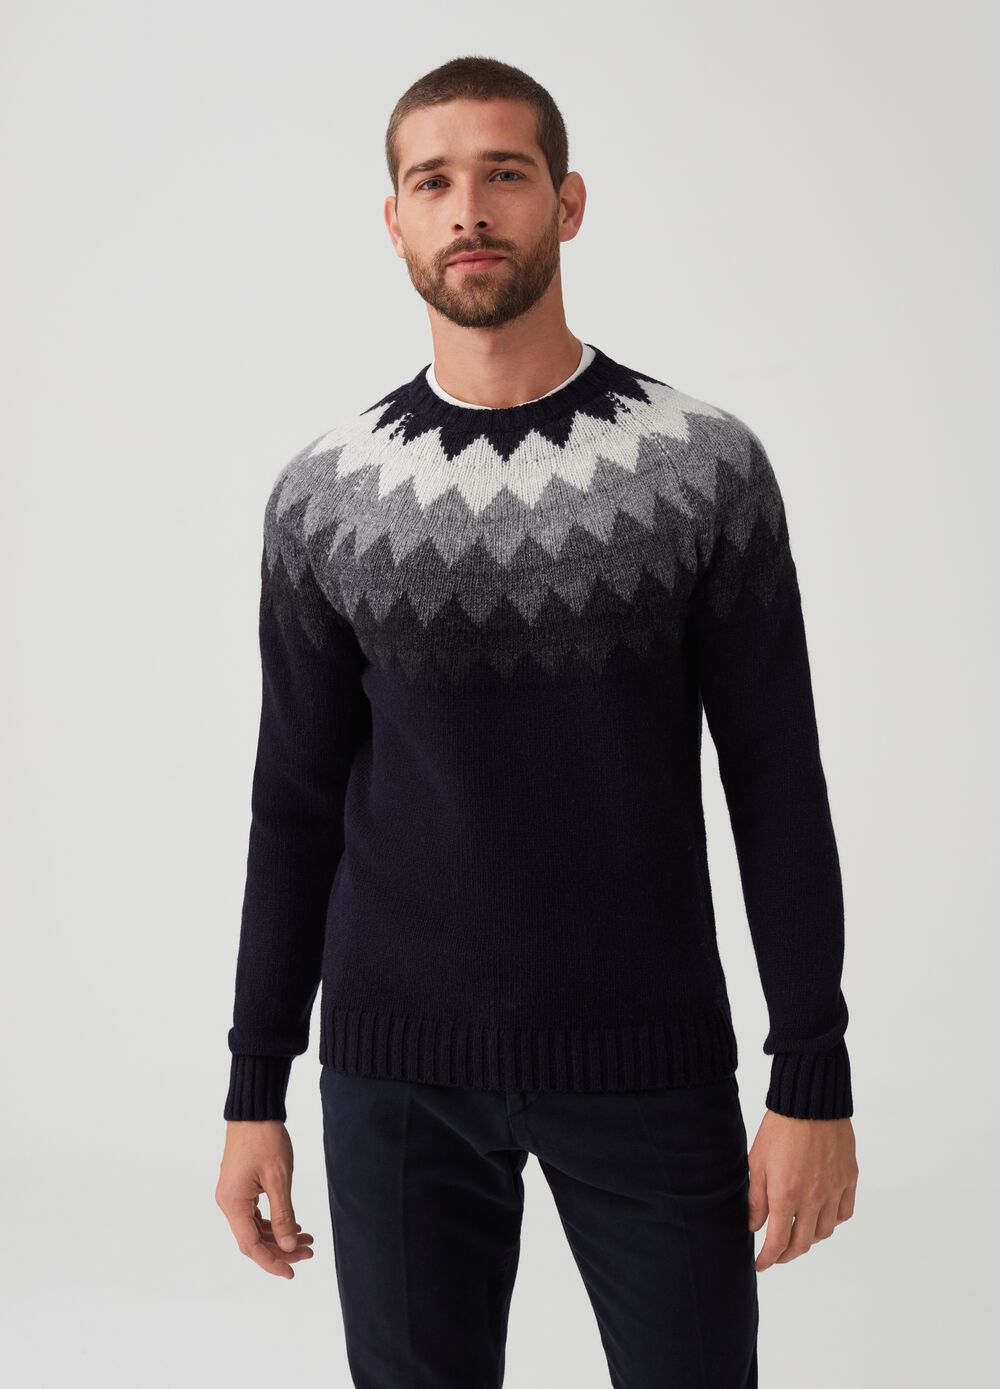 Rumford knitted pullover in wool with embroidery